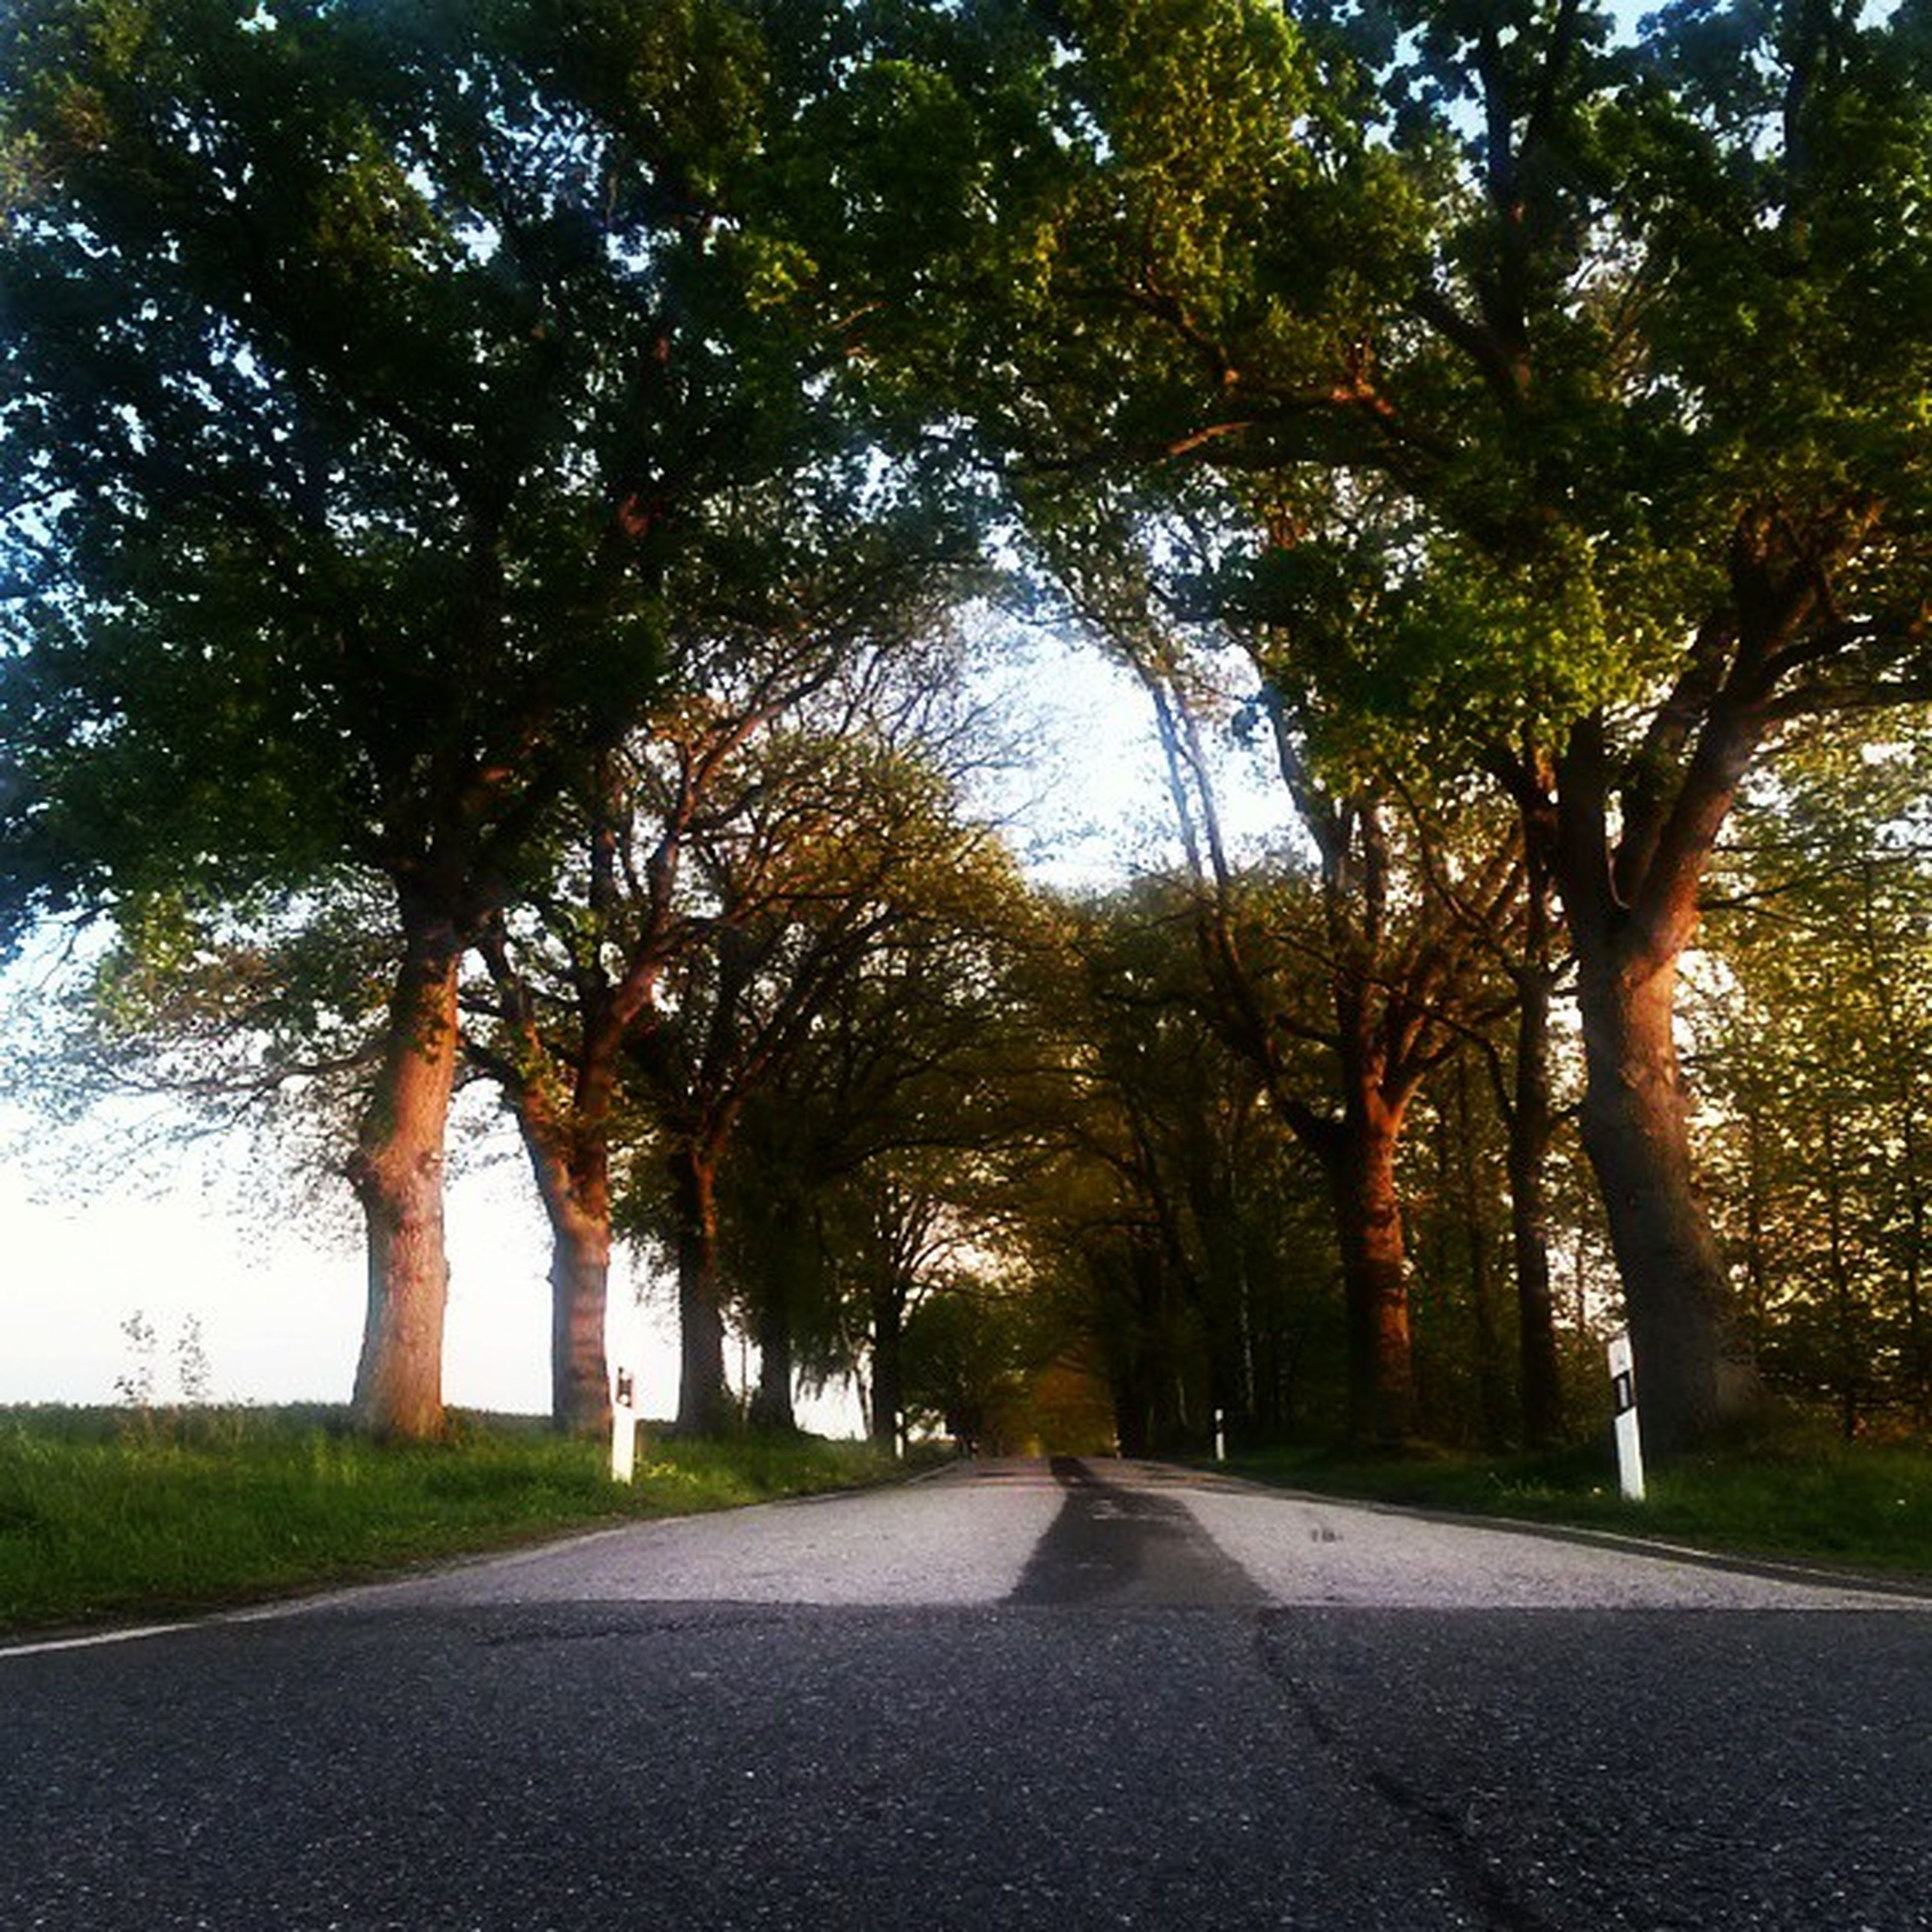 the way forward, tree, road, diminishing perspective, transportation, vanishing point, road marking, empty road, treelined, street, empty, tranquility, long, asphalt, growth, country road, nature, sky, tranquil scene, day